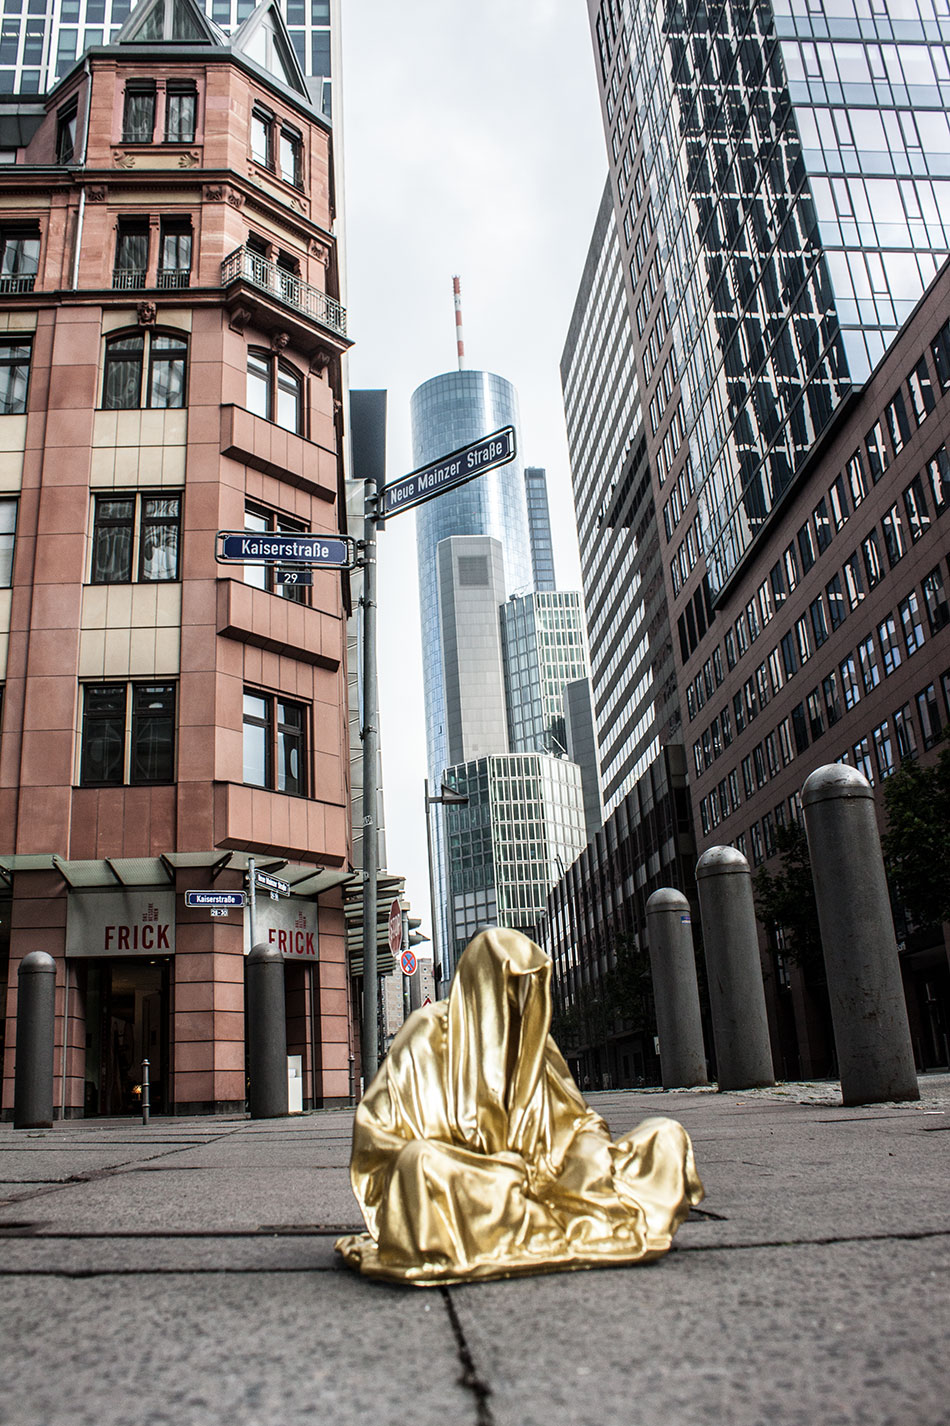 art-germany-frankfurt-guardians-of-time-manfred-kielnhofer-public-modern-contemporary-art-fine-arts-sculpture-design-streat-art-2238